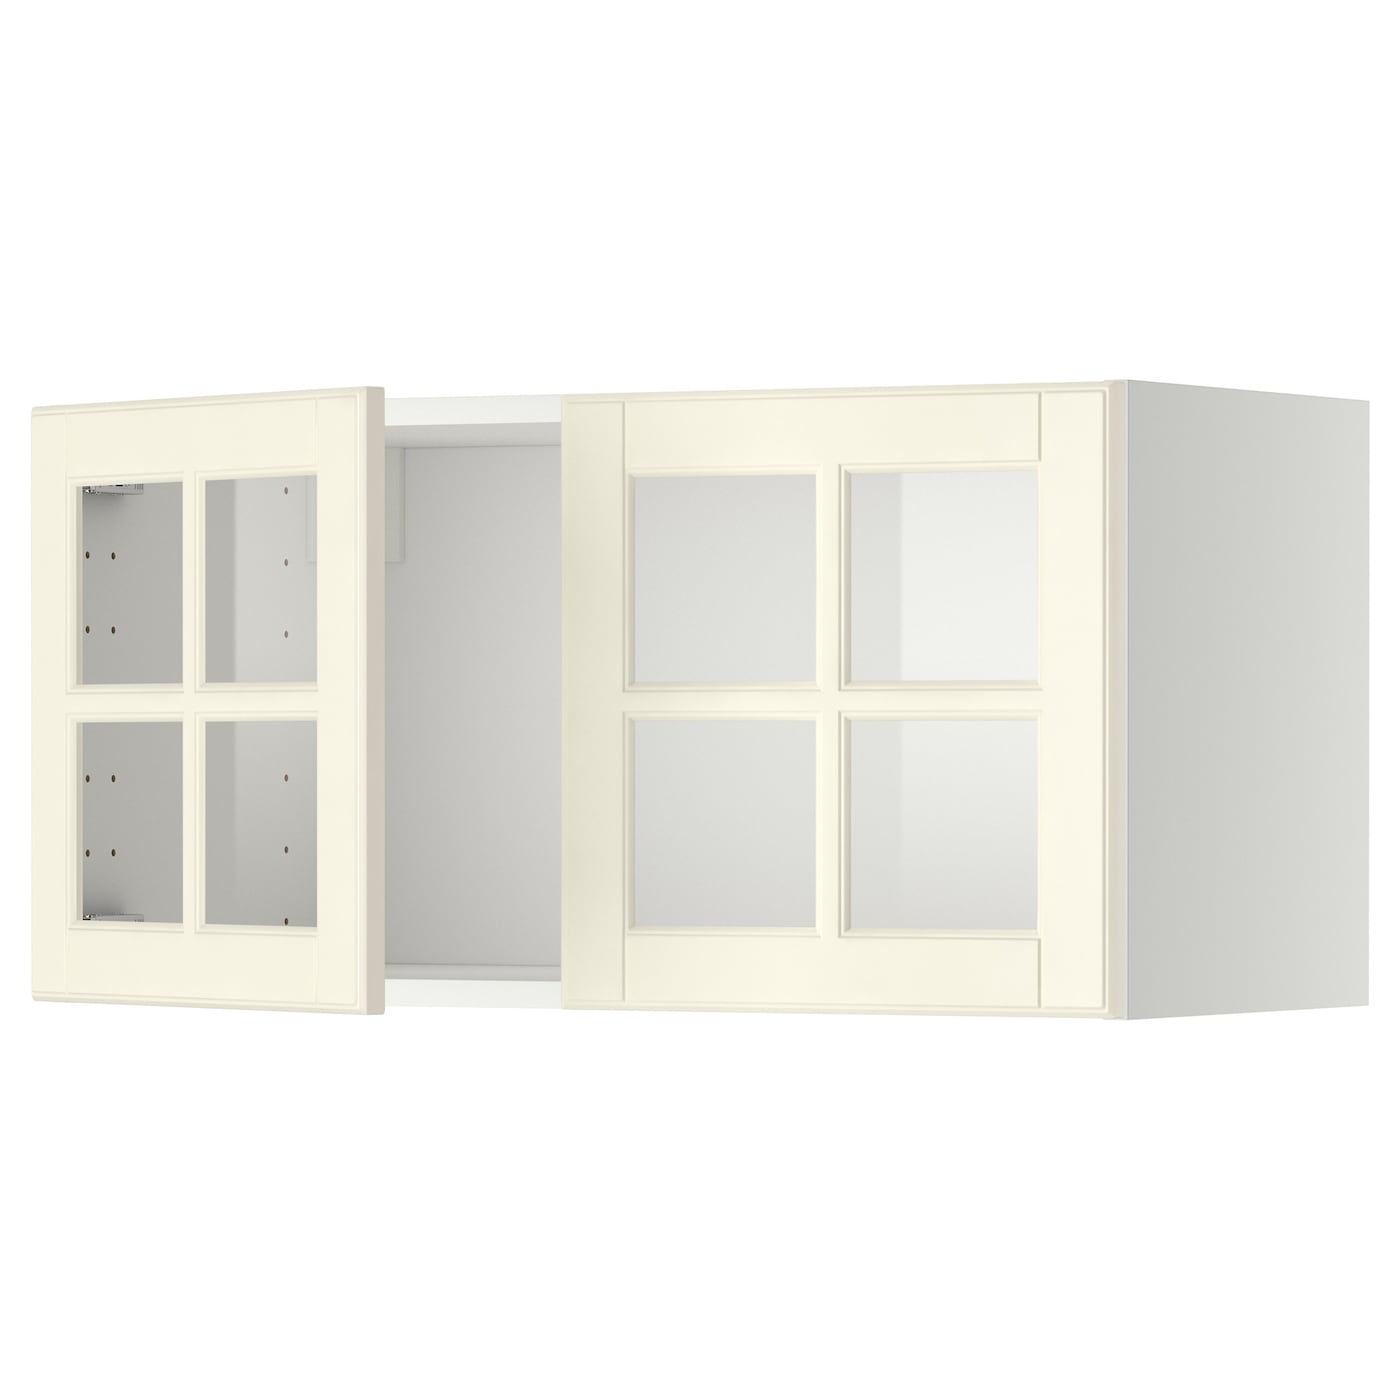 Metod Wall Cabinet With 2 Glass Doors Whitebodbyn Off White 80 X 40